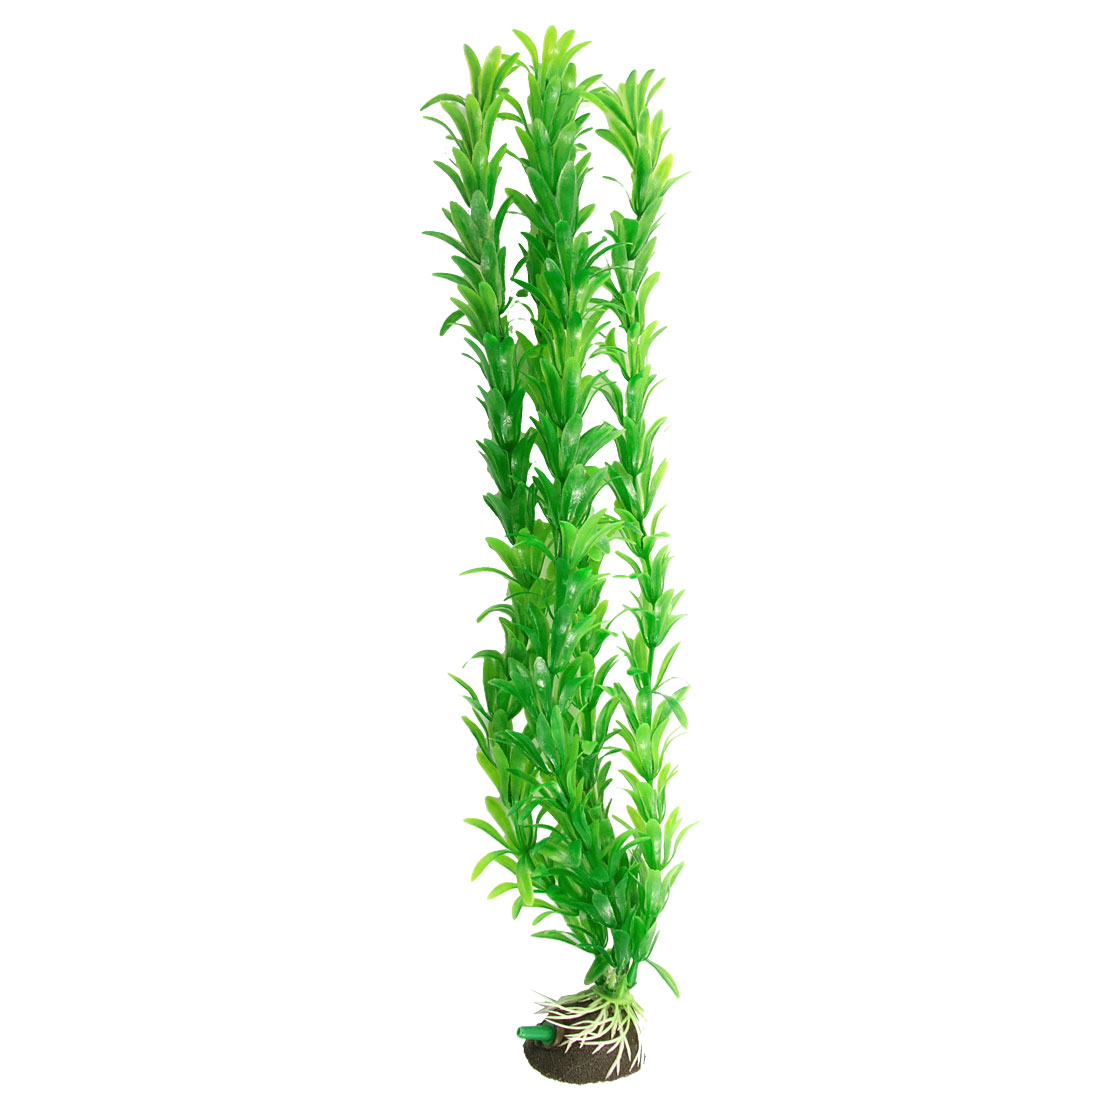 "Fish Tank Aquarium Air Stone 14.5"" Green Plastic Aquatic Plant Decor"